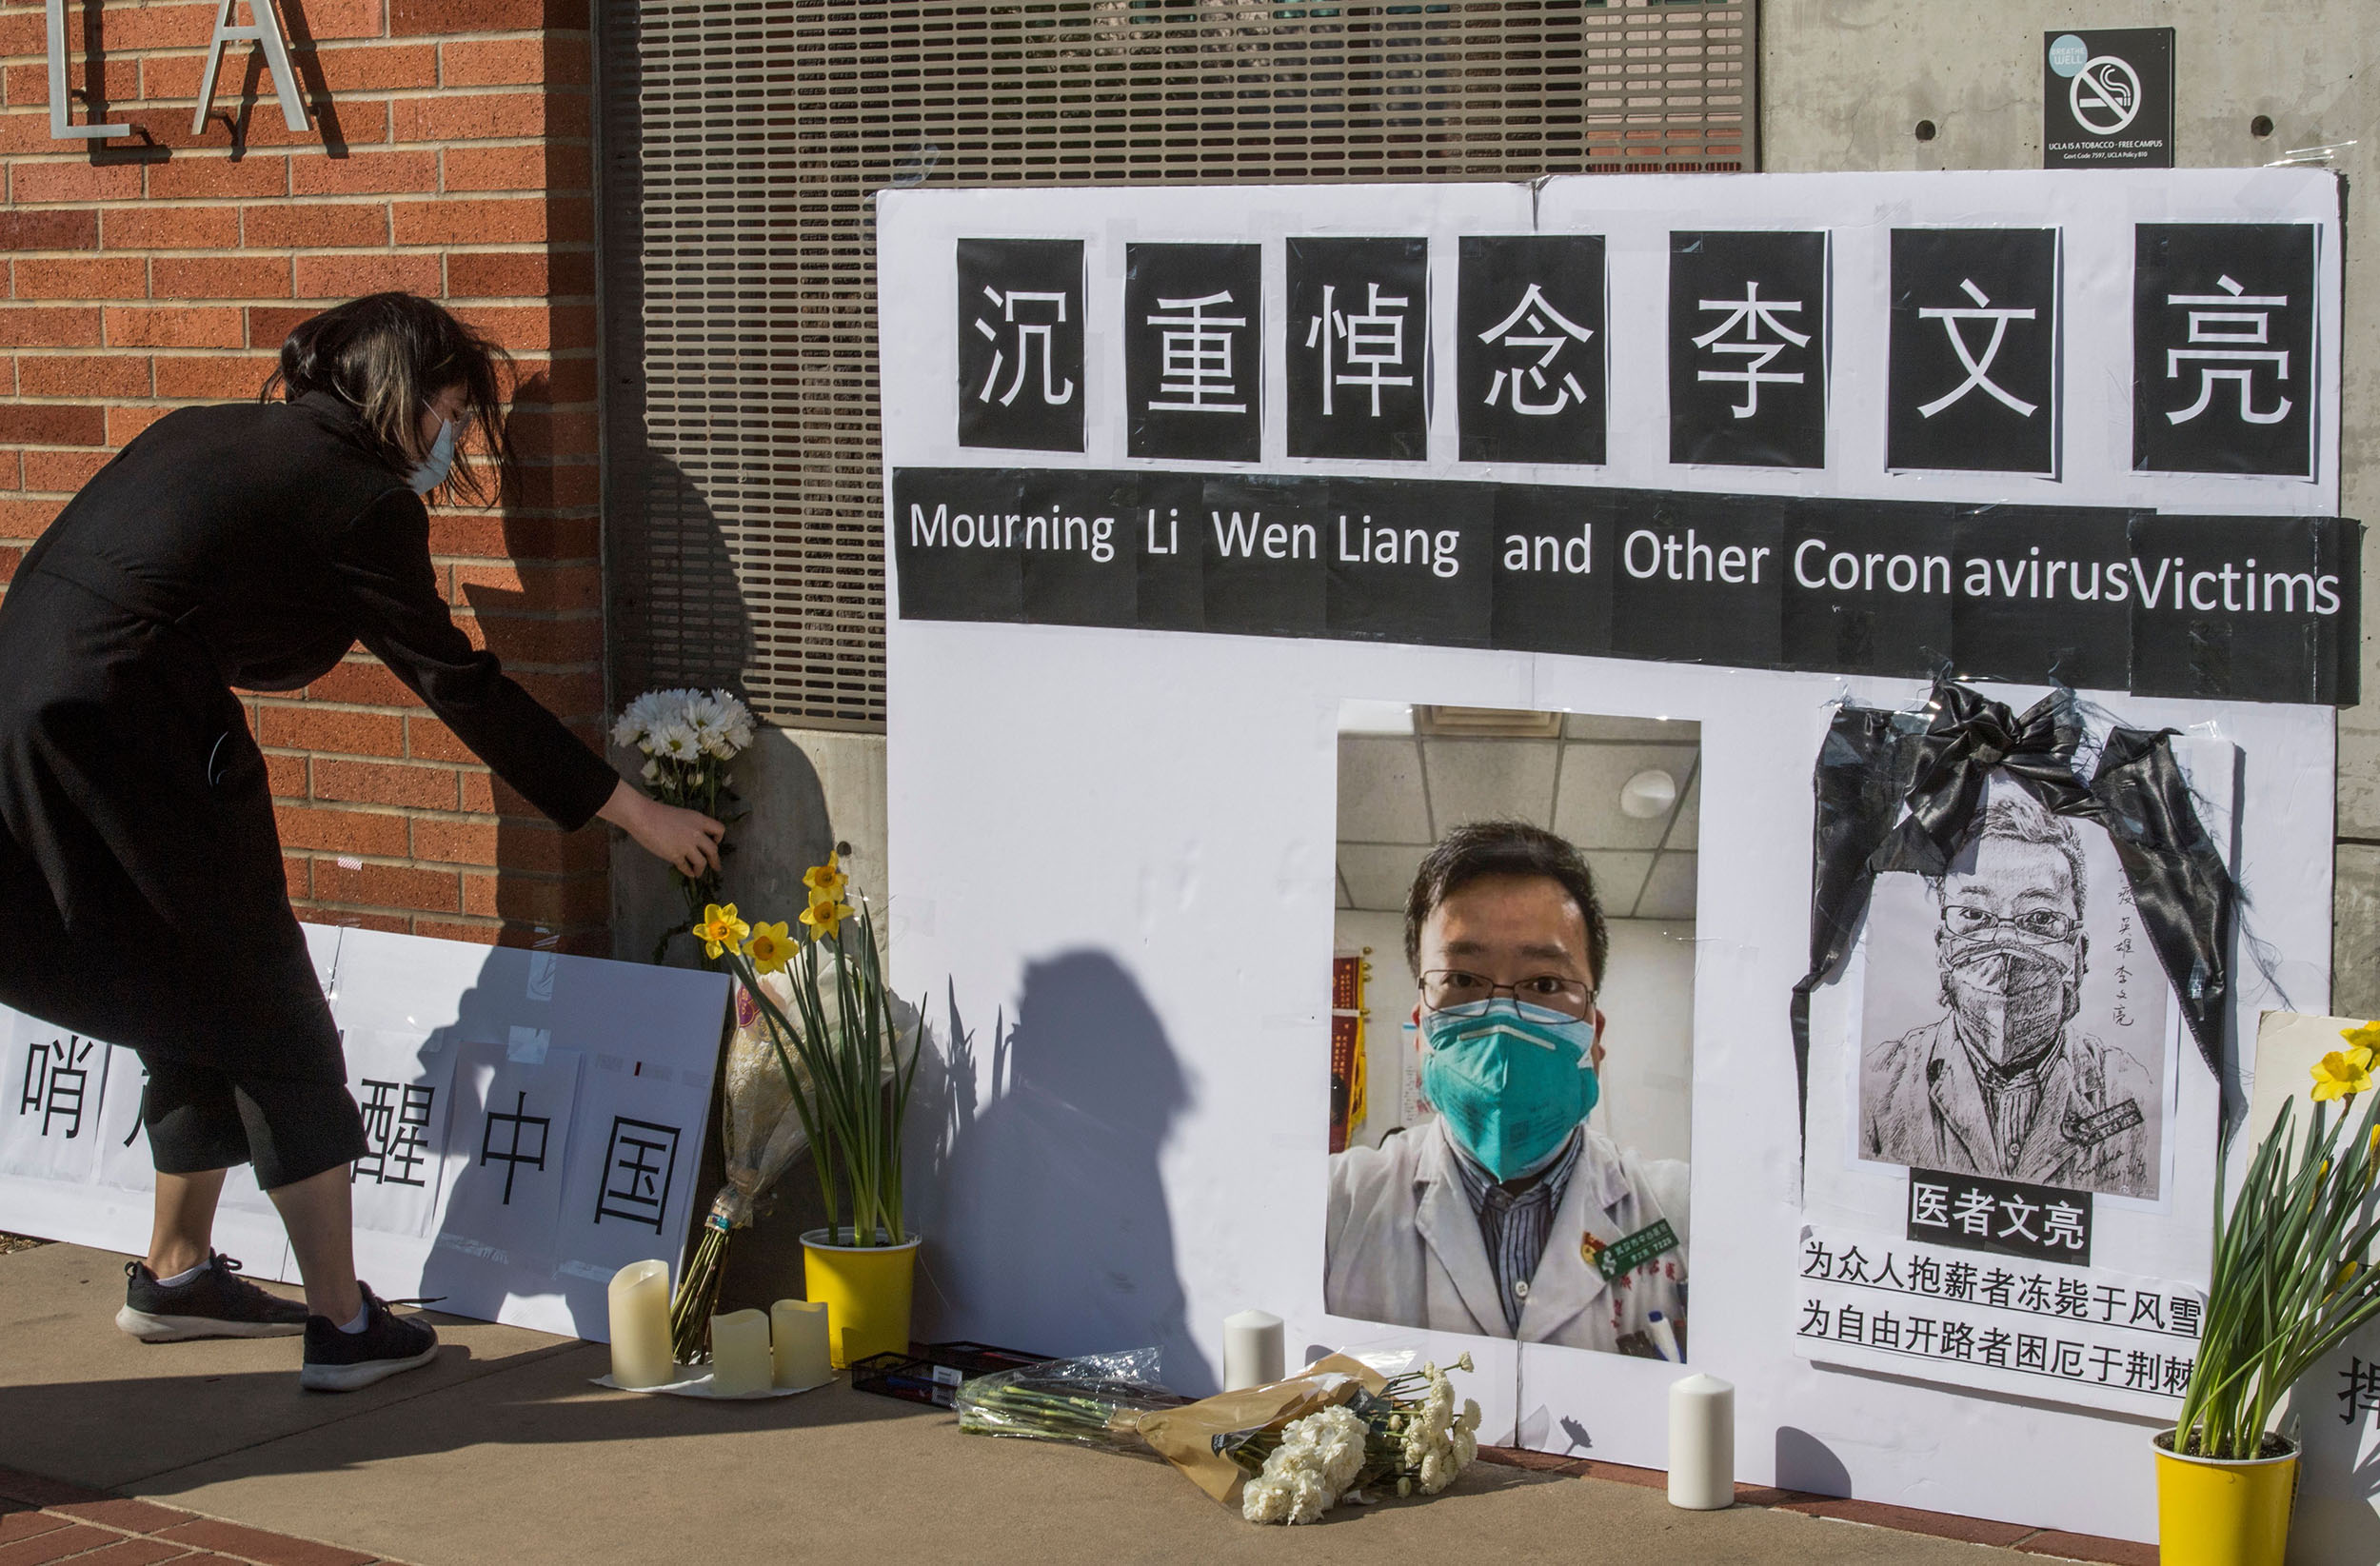 A memorial for Dr Li Wenliang, who was the whistleblower of the coronavirus, that originated in Wuhan, China and caused the doctors death in that city, is held outside the UCLA campus in Westwood, California, on February 15.